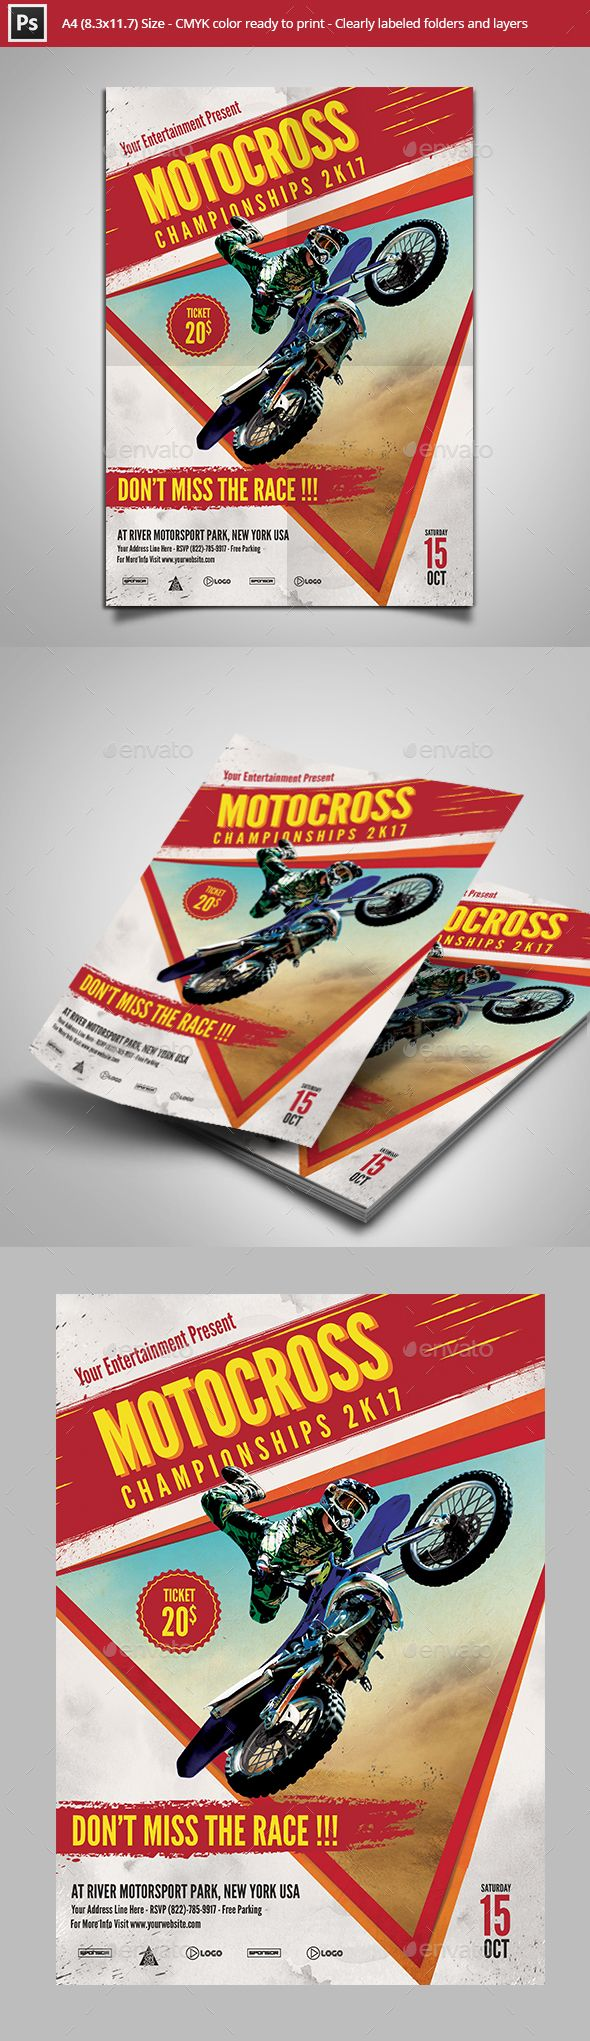 Motocross Championships Flyer Template by Yudha_SBS Flyer template design for Motocross championships Features :1 PSD file (min version cs2)Size : A4 Size (8.27'x11.69') with 0.25'b